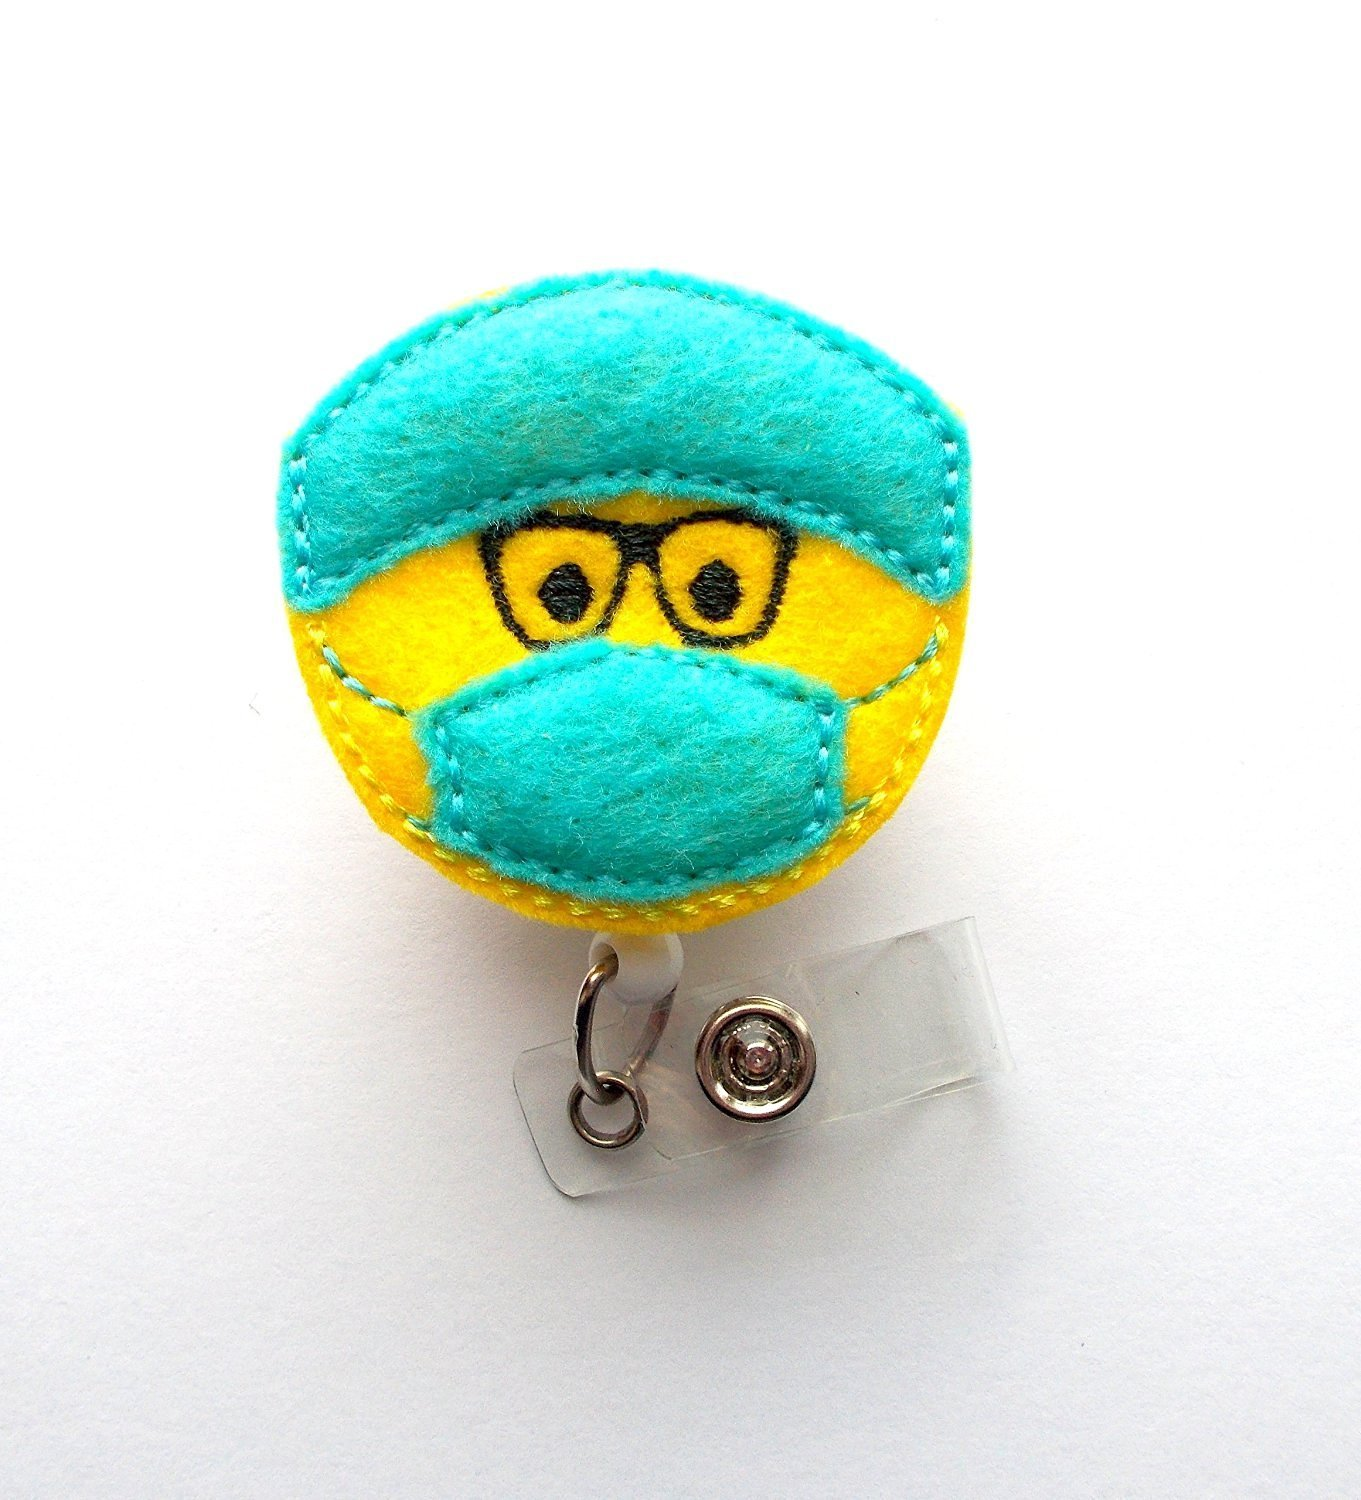 Buy Surgical Tech With Glasses - Badge Reel - Surgical